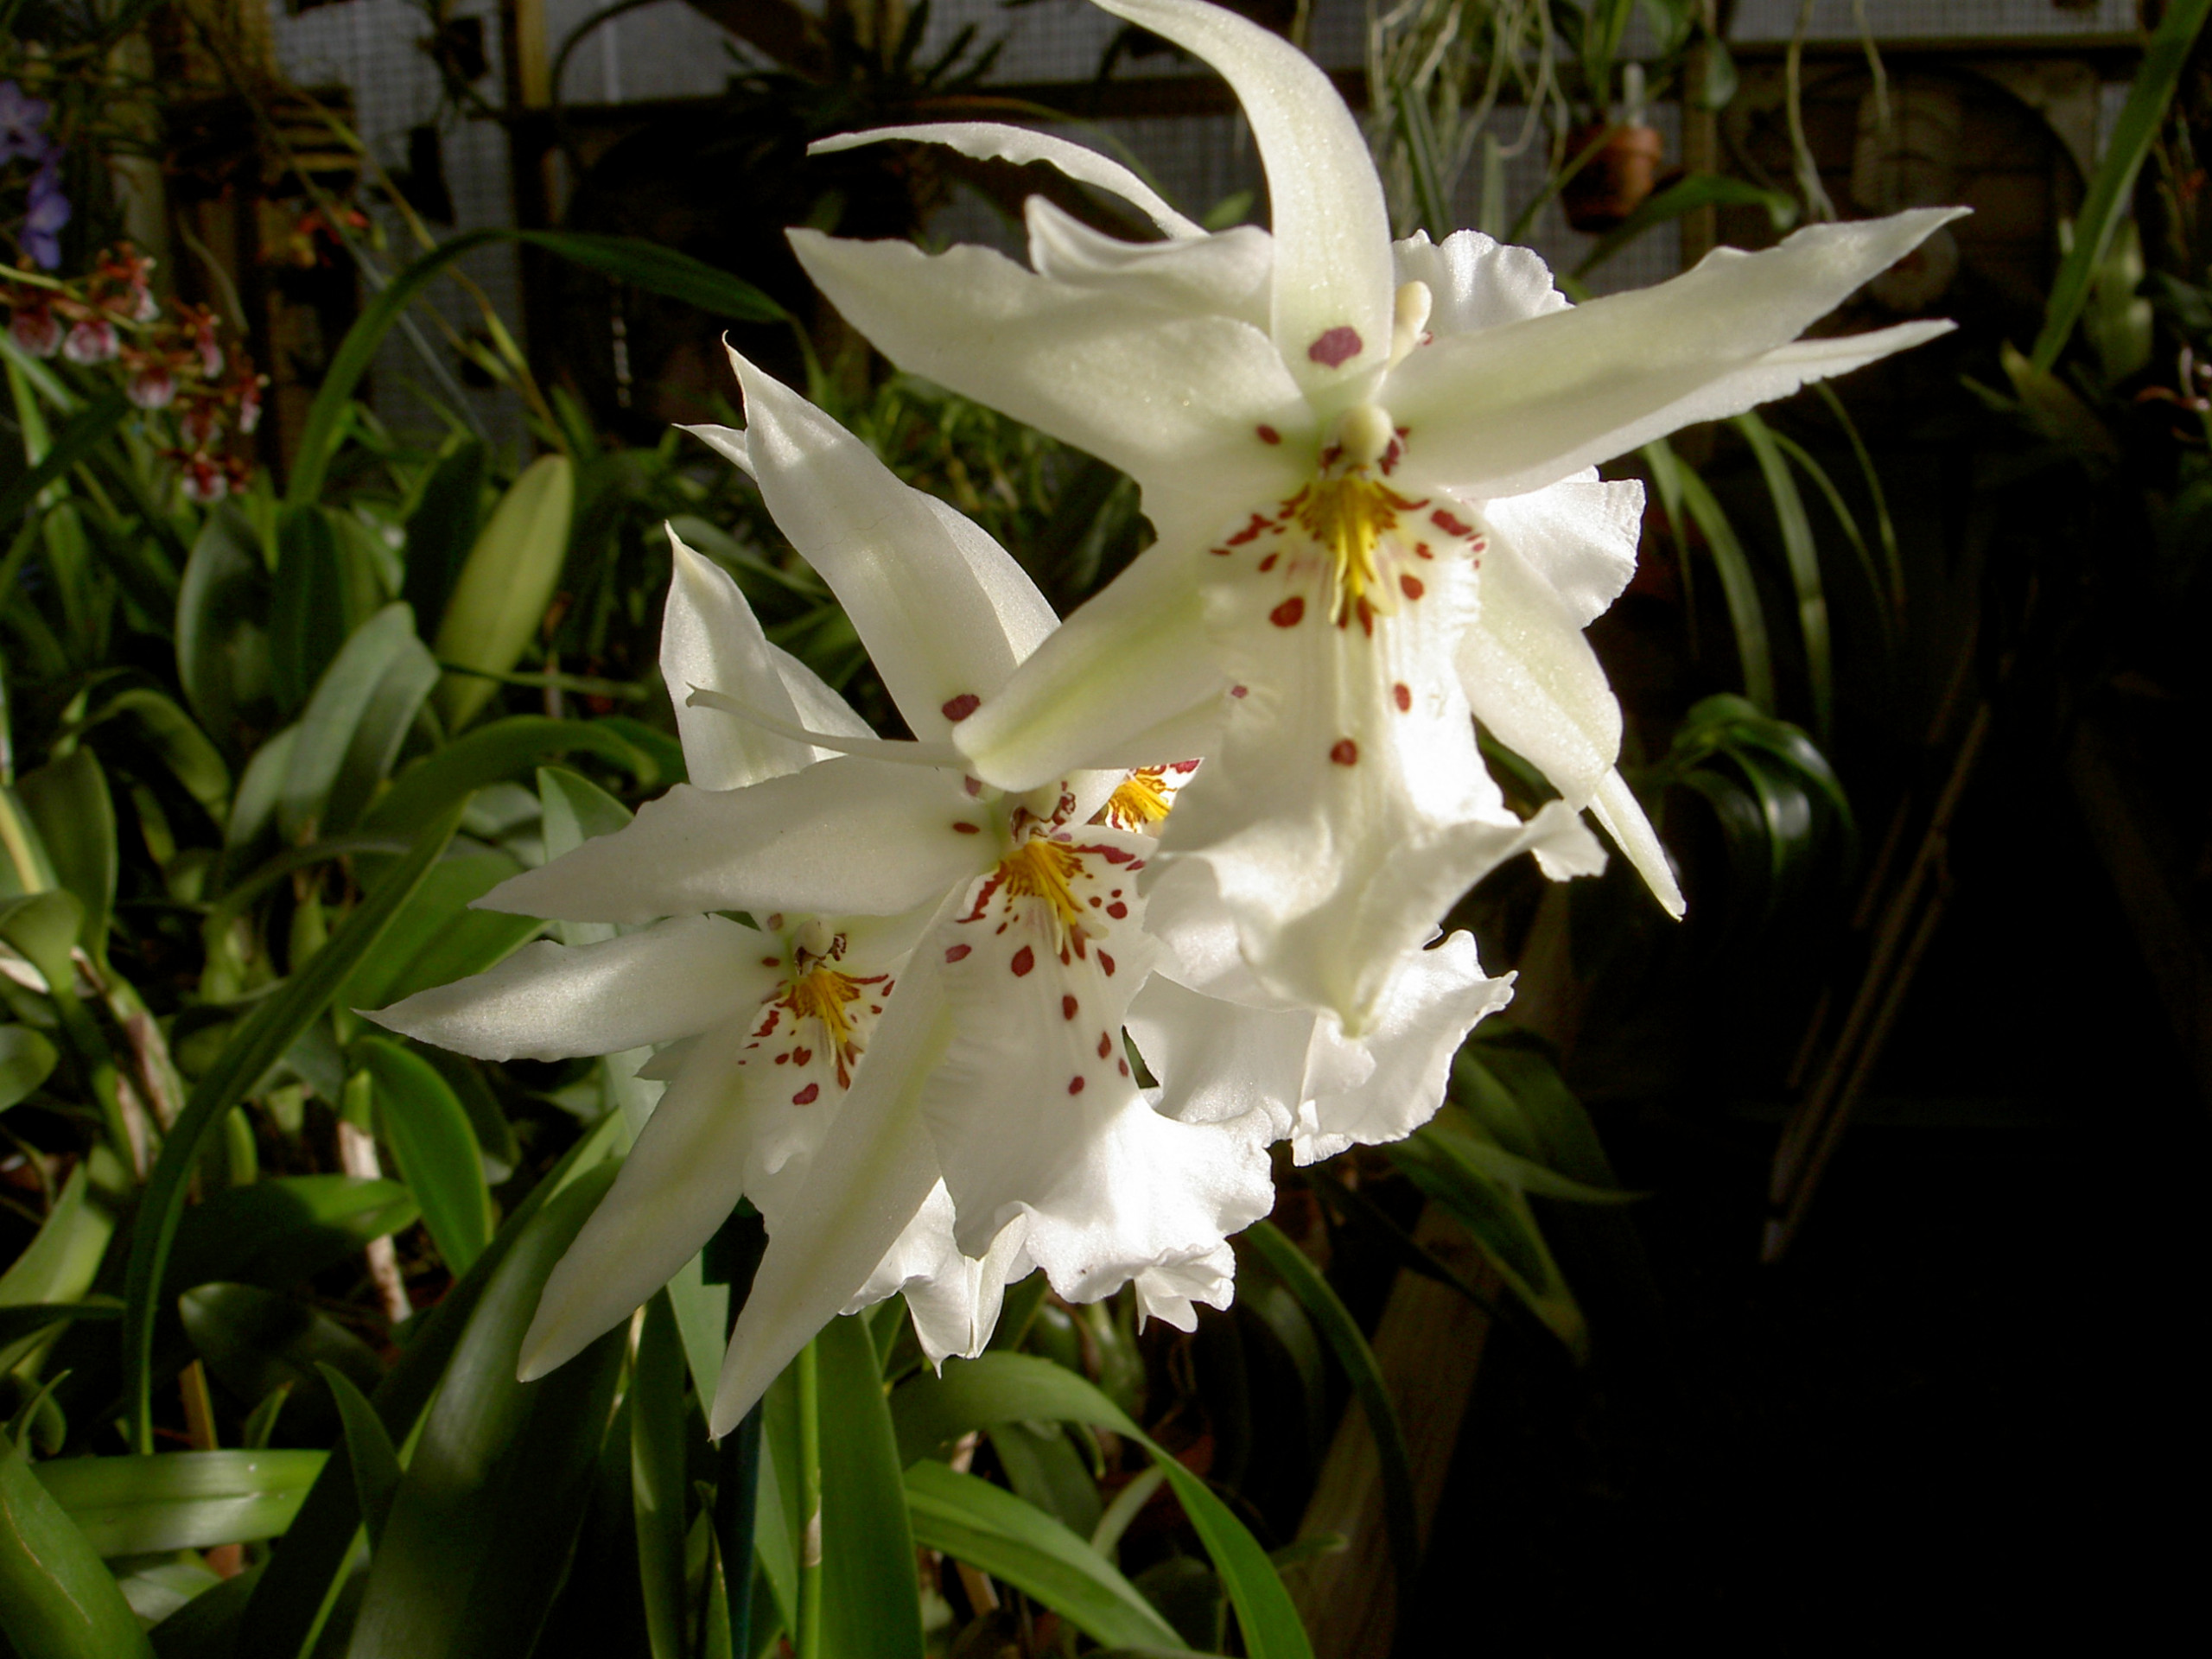 Degarmoara Winter Wonderland 'White Fairy' (Oncidium intergeneric)